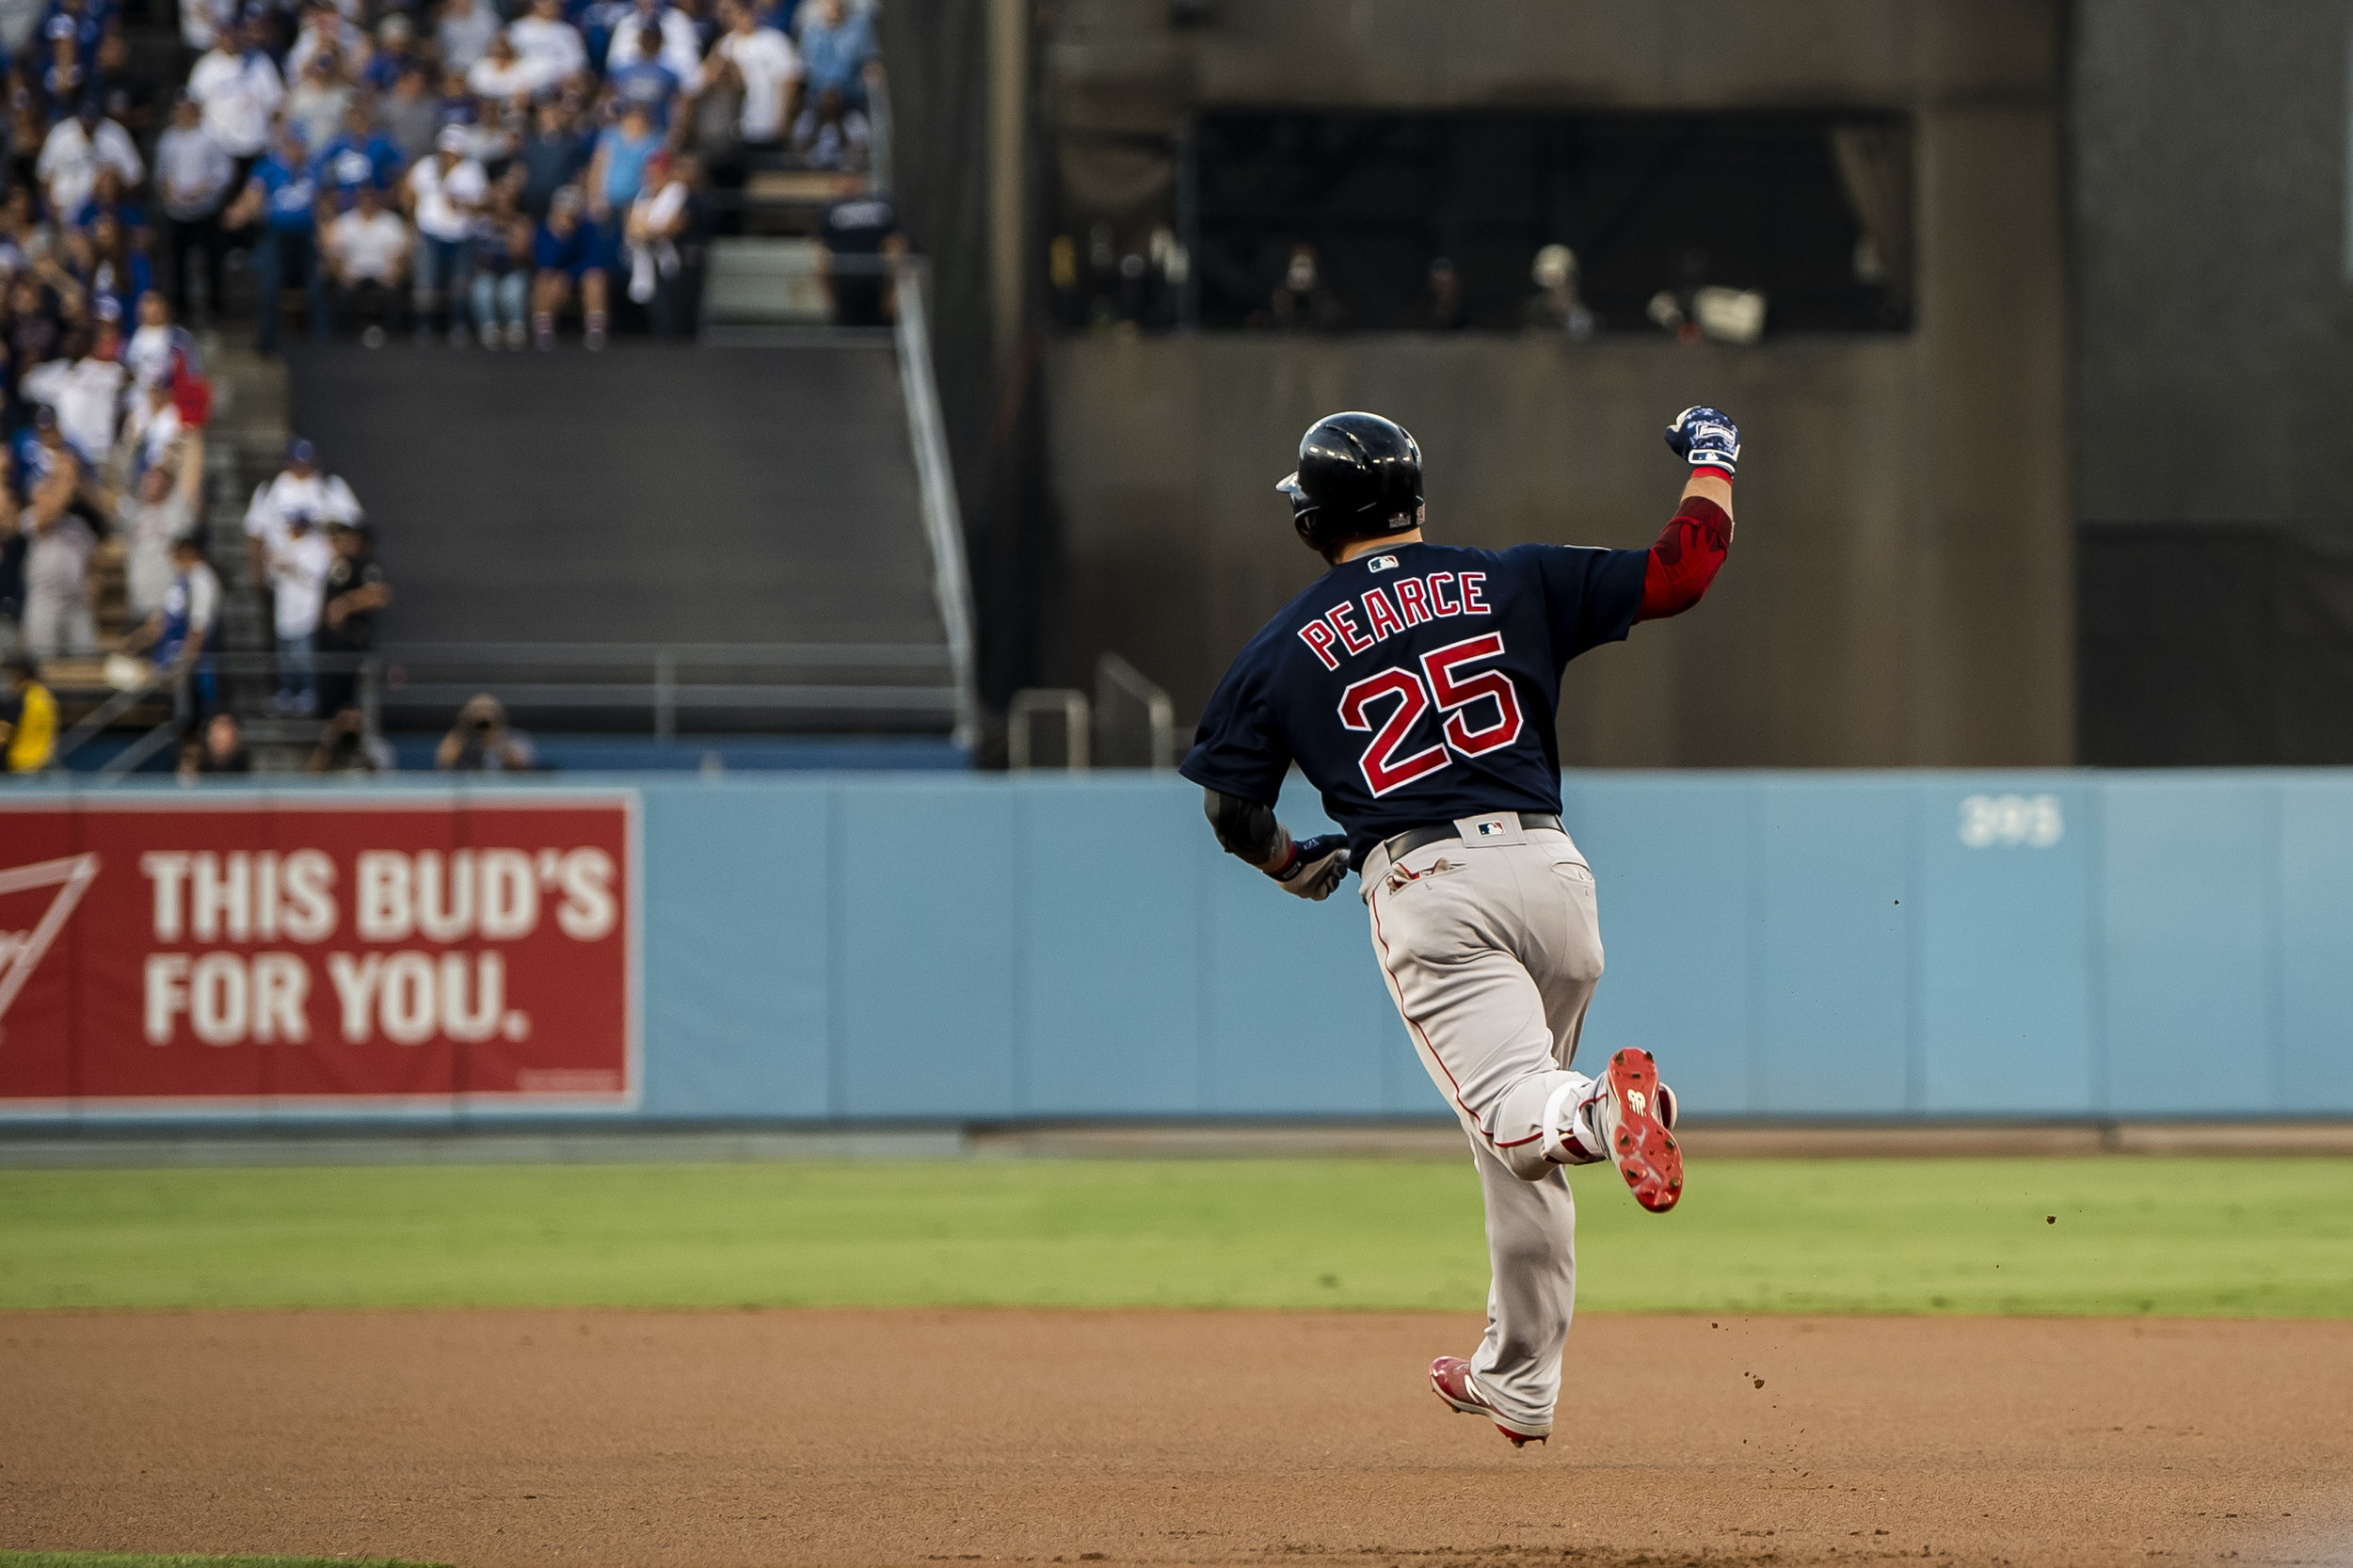 October 28, 2018, Los Angeles, Ca: Boston Red Sox infielder Steve Pearce raises his fist after hitting a home run as the Boston Red Sox face the Los Angeles Dodgers in Game 5 of the World Series at Dodger Stadium in Los Angeles, California on Saturday, October 28, 2018. (Photo by Matthew Thomas/Boston Red Sox)